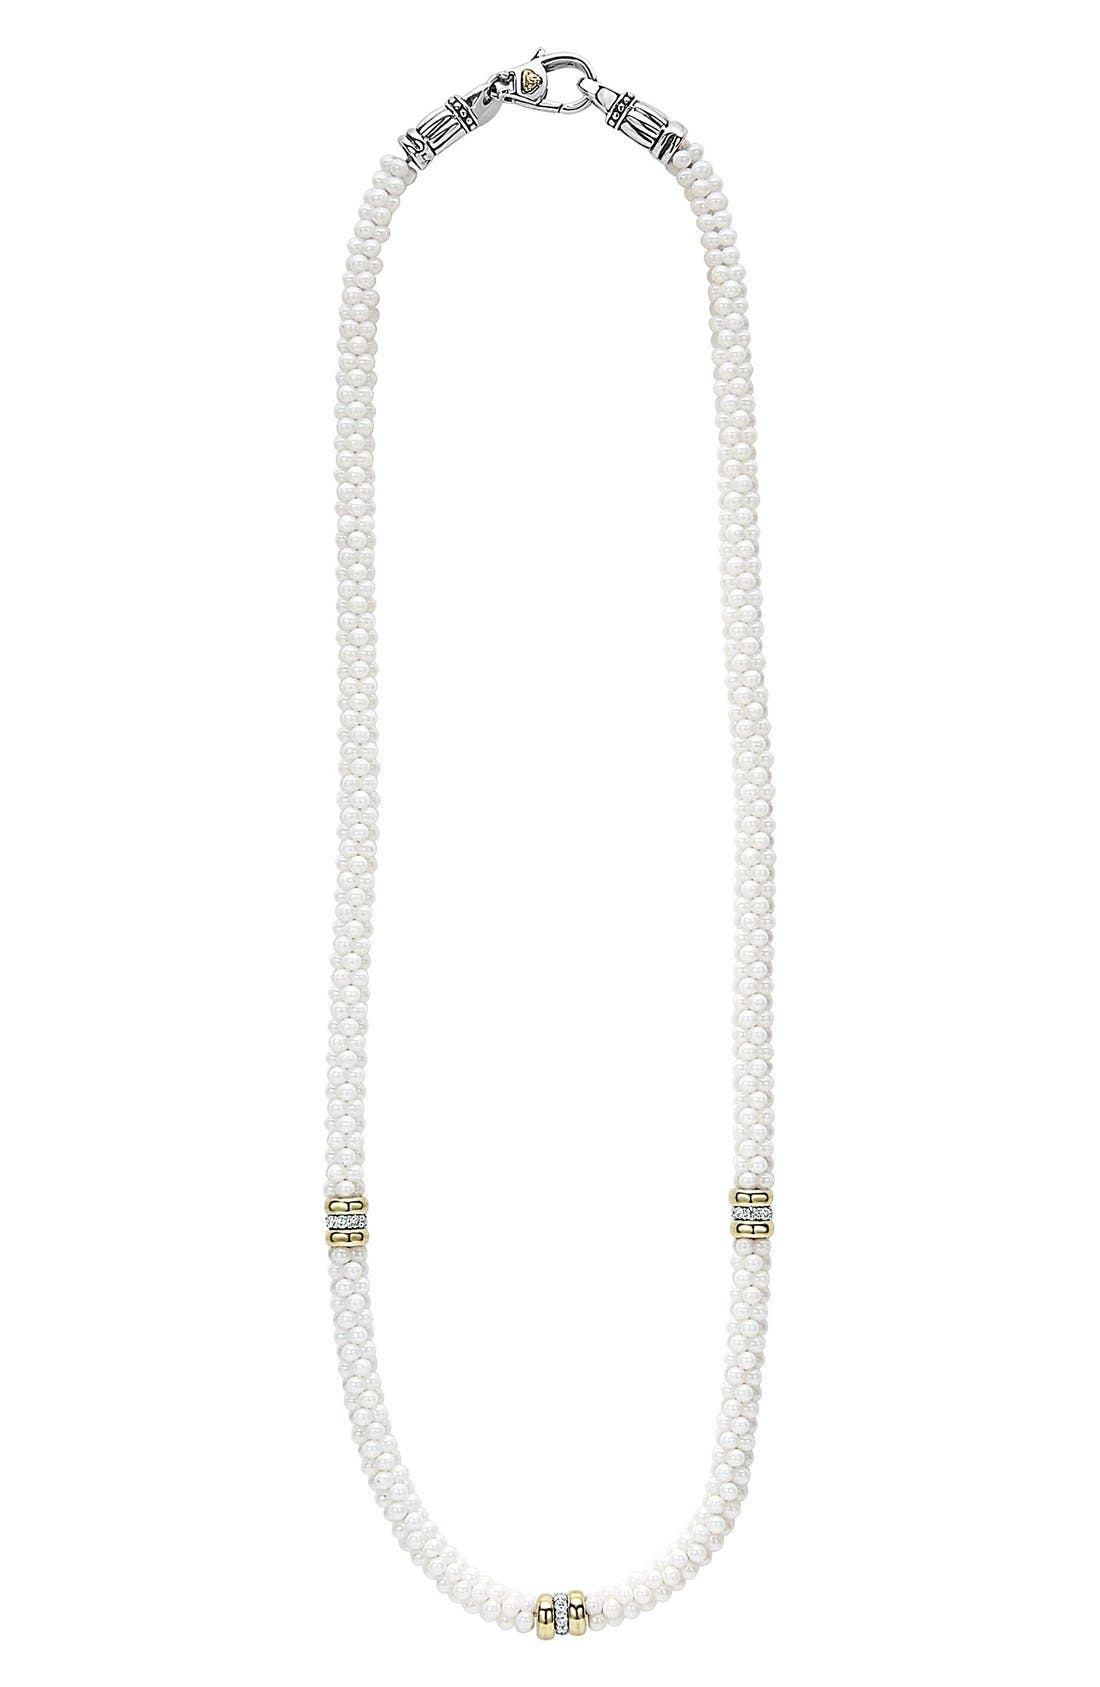 LAGOS 'White Caviar' 5mm Beaded Diamond Station Necklace